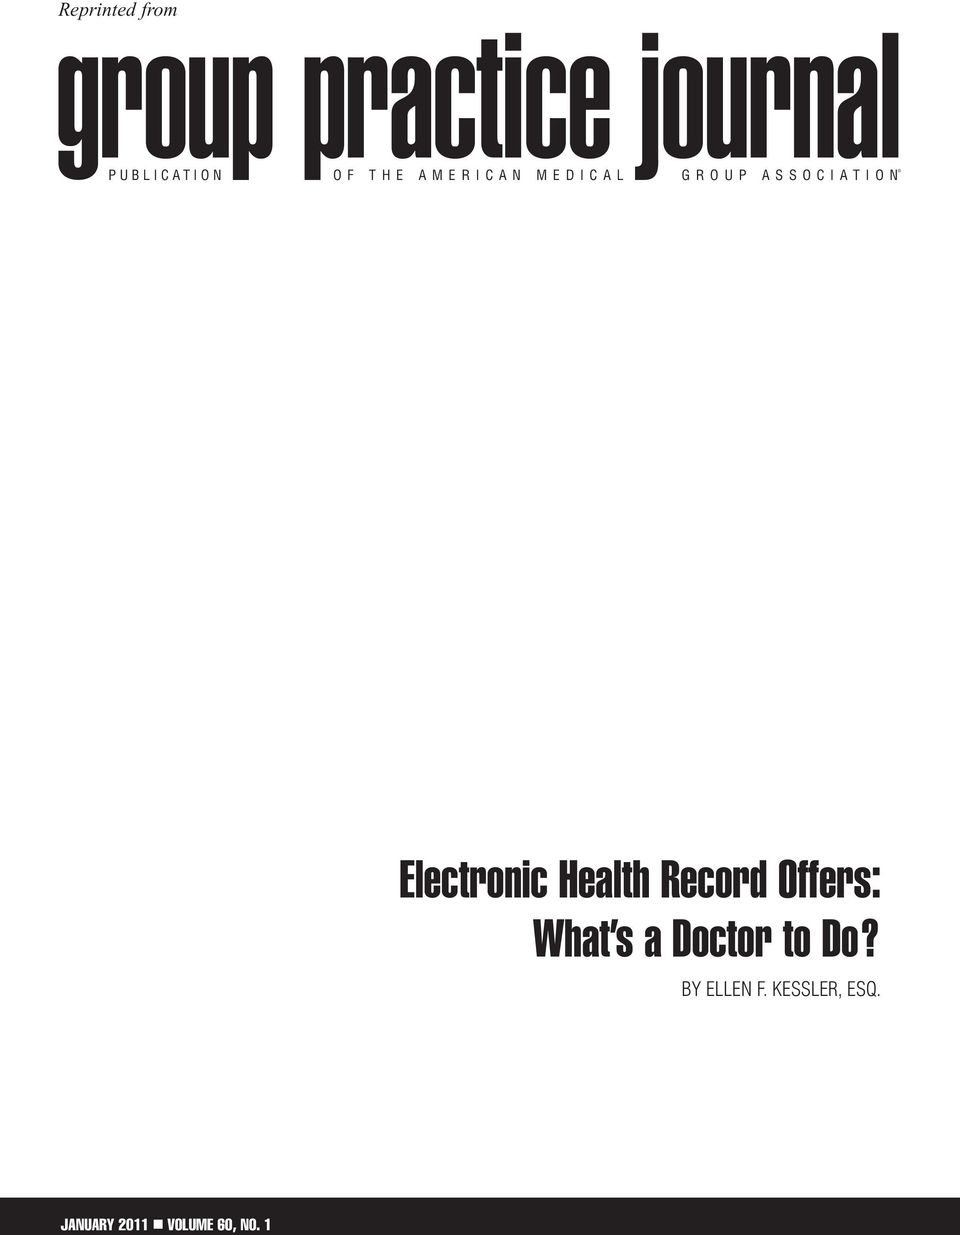 Reprinted from Electronic Health Record Offers: What s a